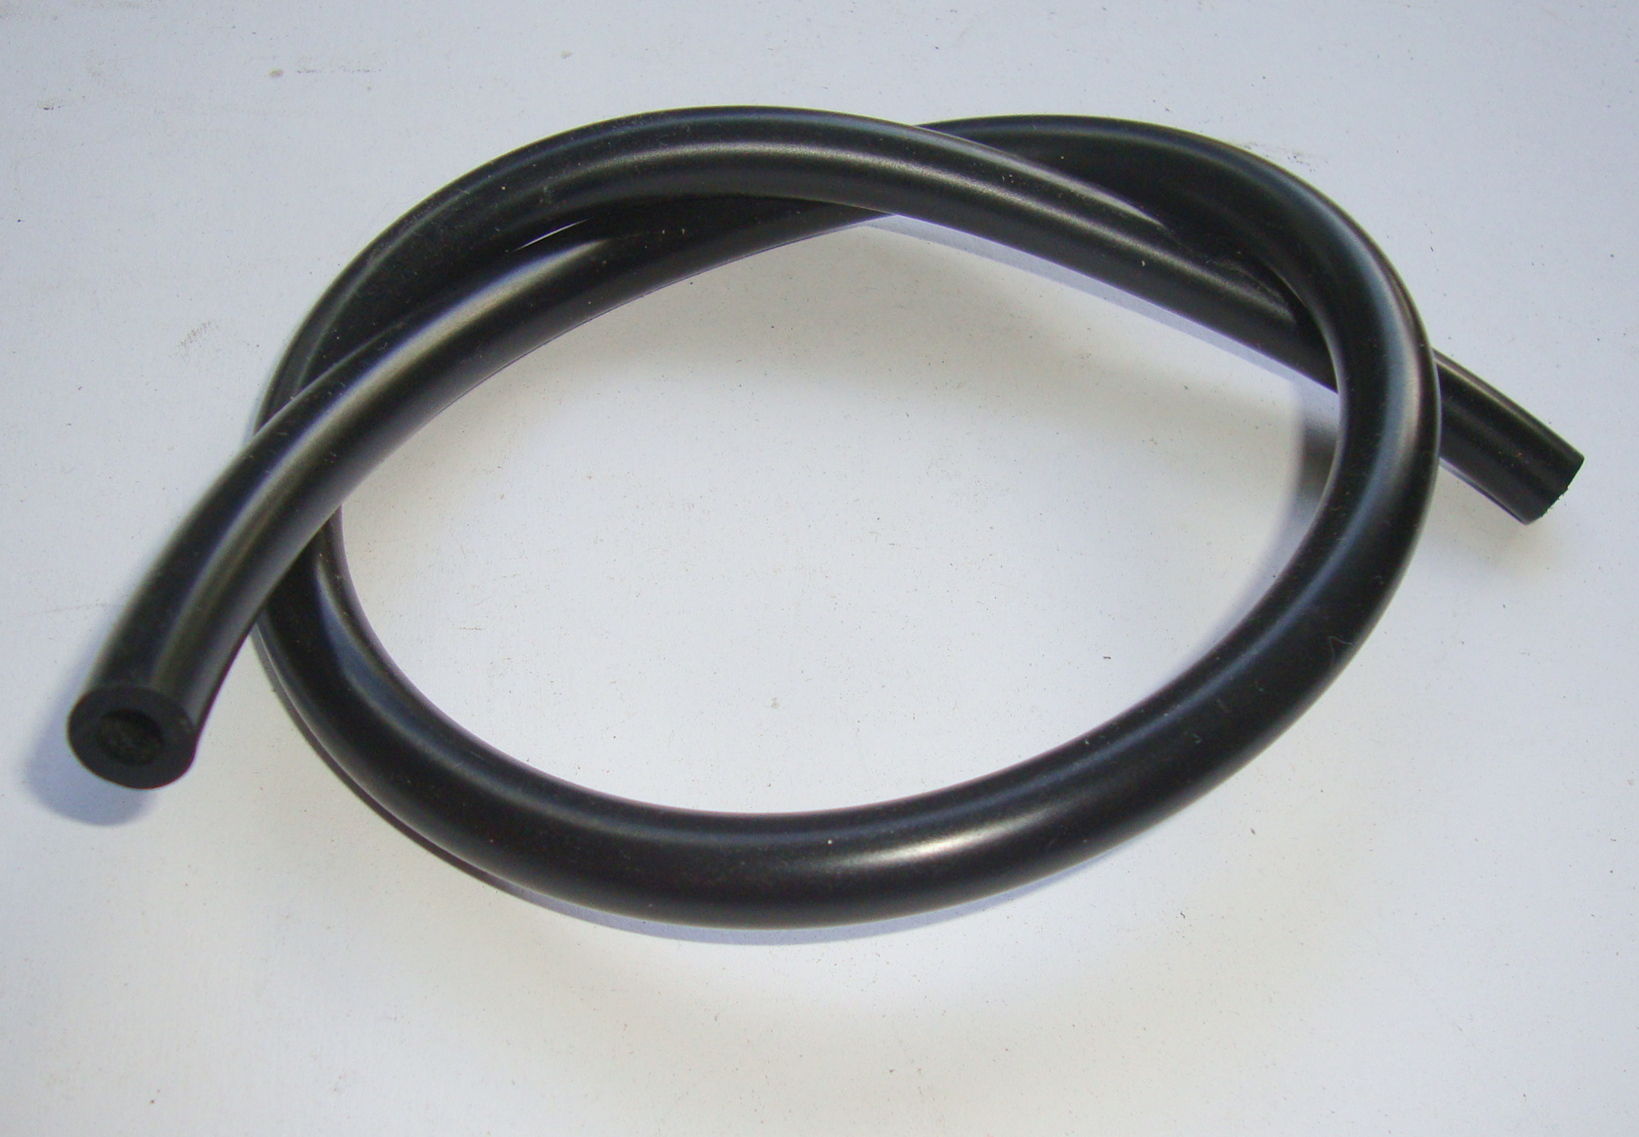 Waste tube, aircleaner, Vespa GS 150 - 160 / SS 180